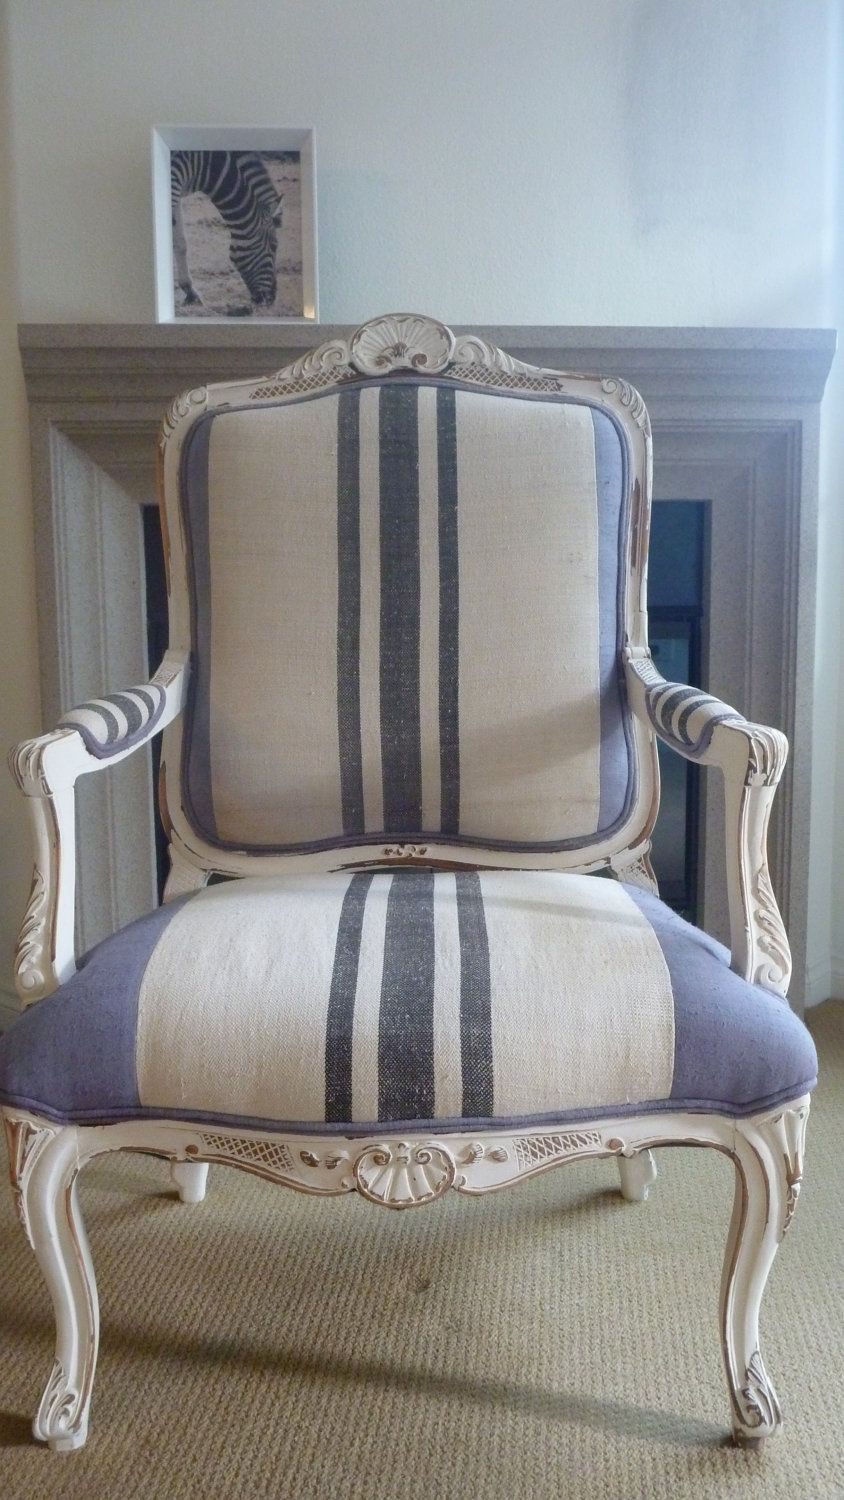 Stripe French Chair With Flair. $800.00, Via Etsy.